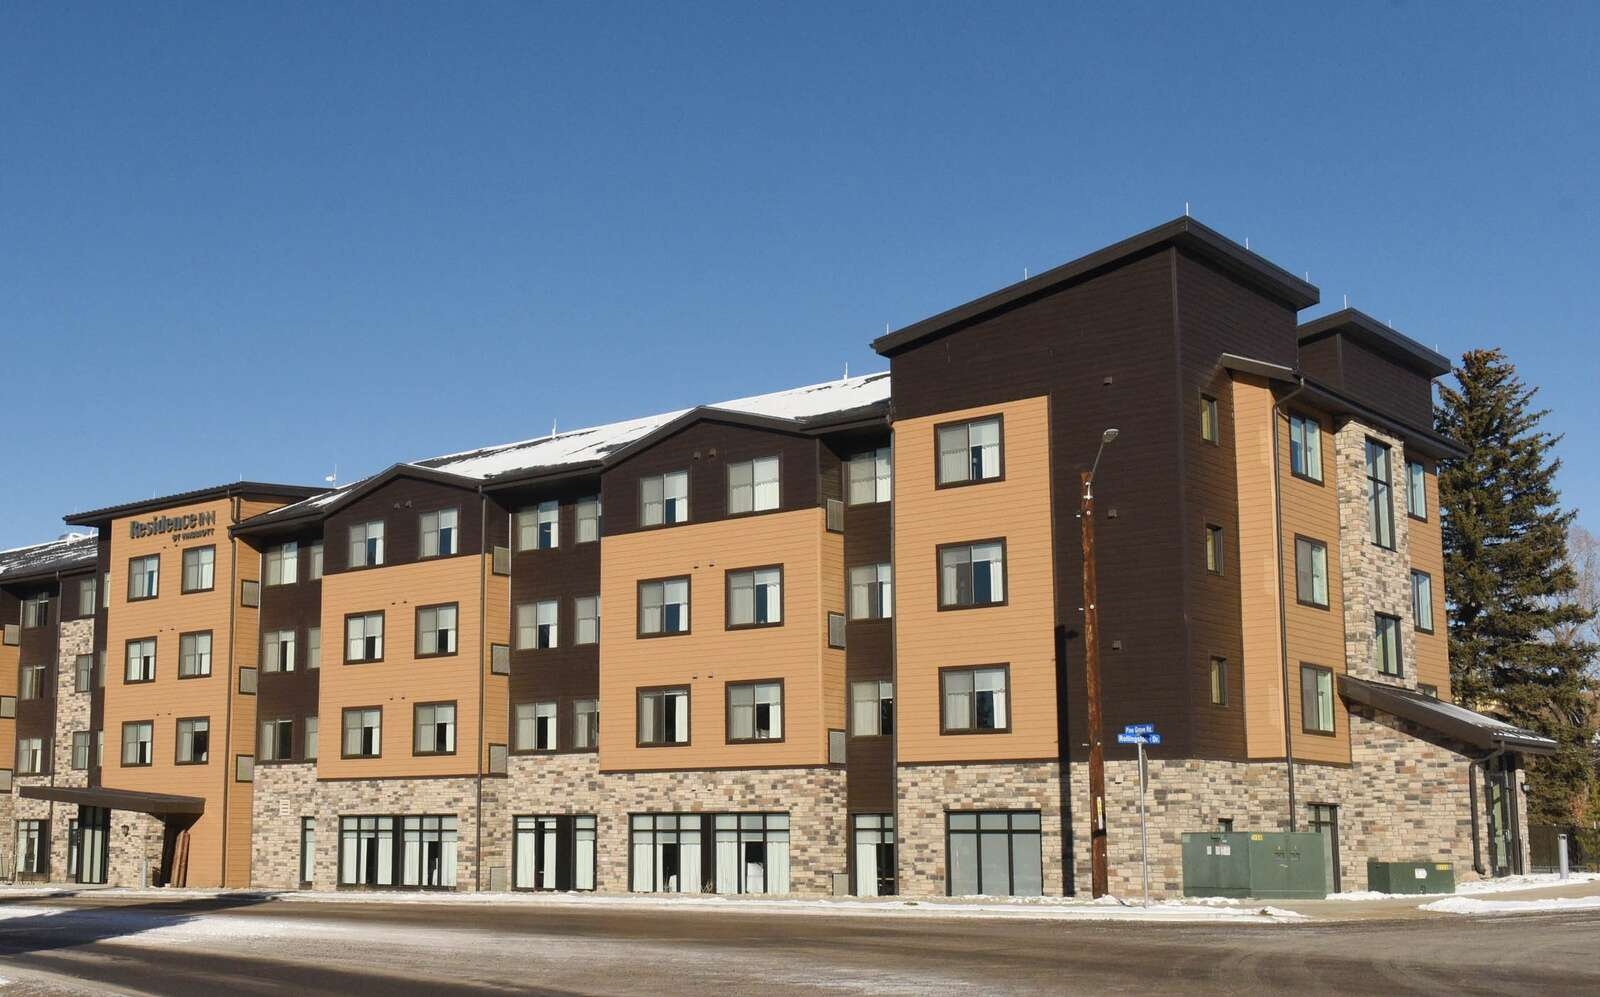 The new Residence Inn by Marriott opened its doors in Steamboat Springs this week. General Manager Grant D'Entremont said he expects to be fully occupied for the Holidays and reservations are looking good as he peeks ahead to January and February. (Photo by John F. Russell)